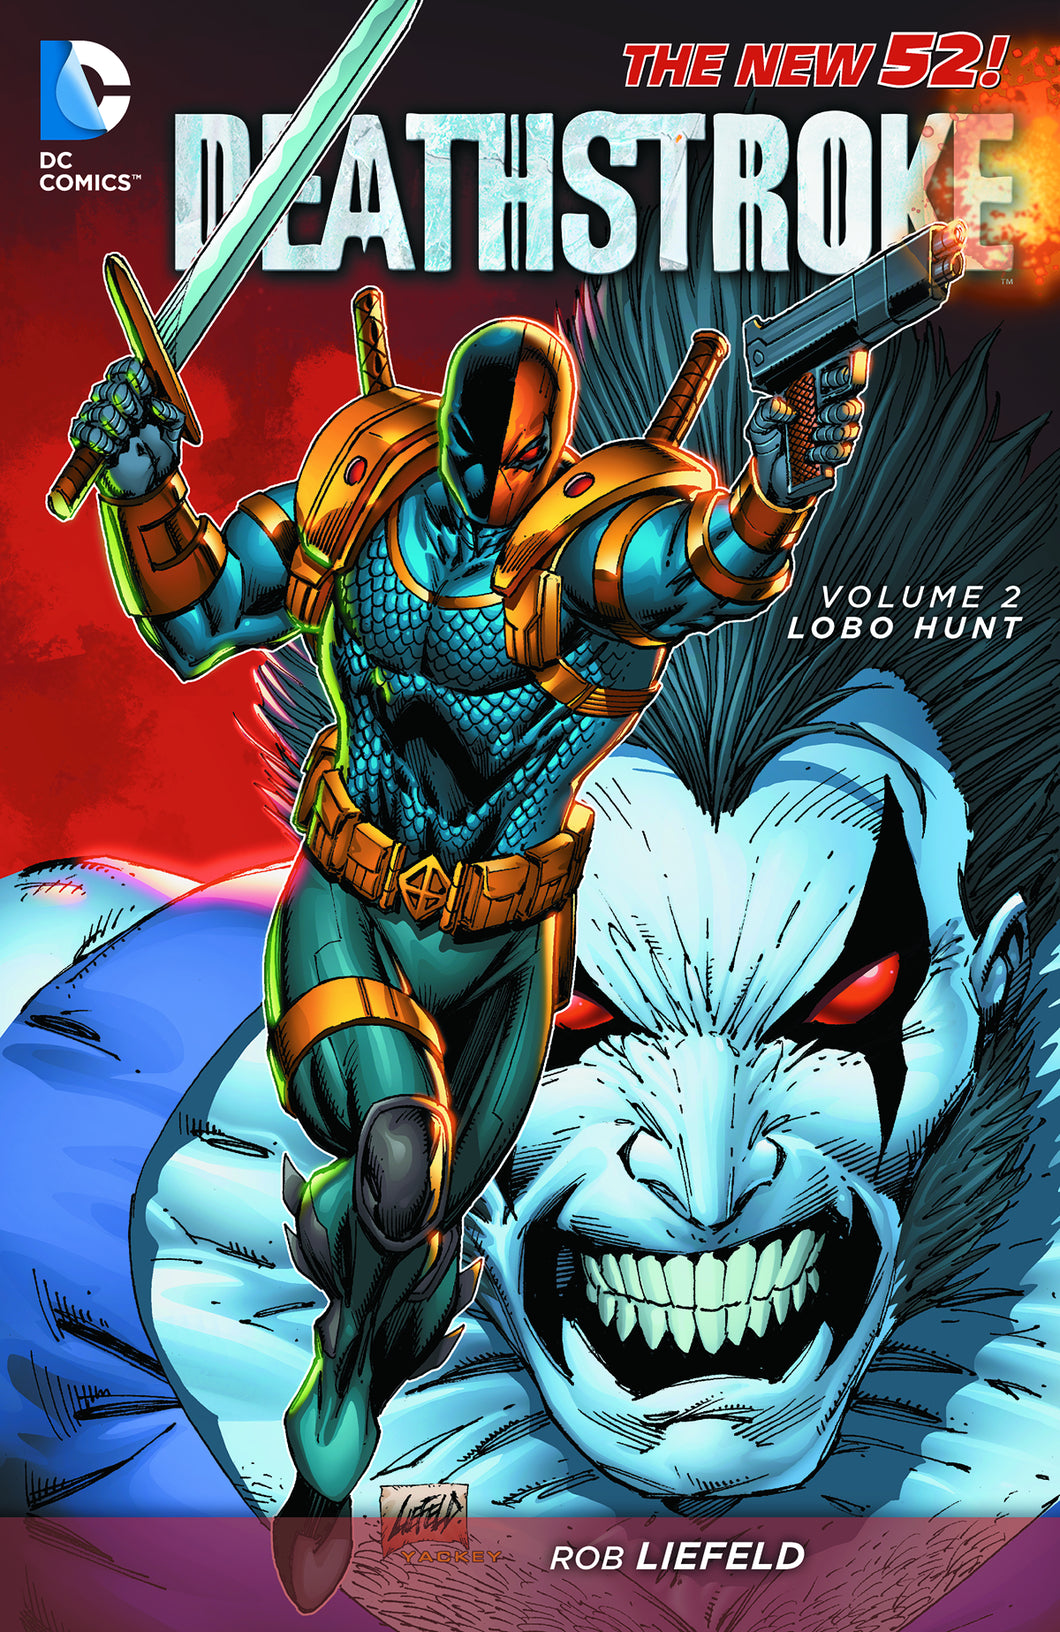 DEATHSTROKE TP VOL 02 LOBO HUNT (N52)